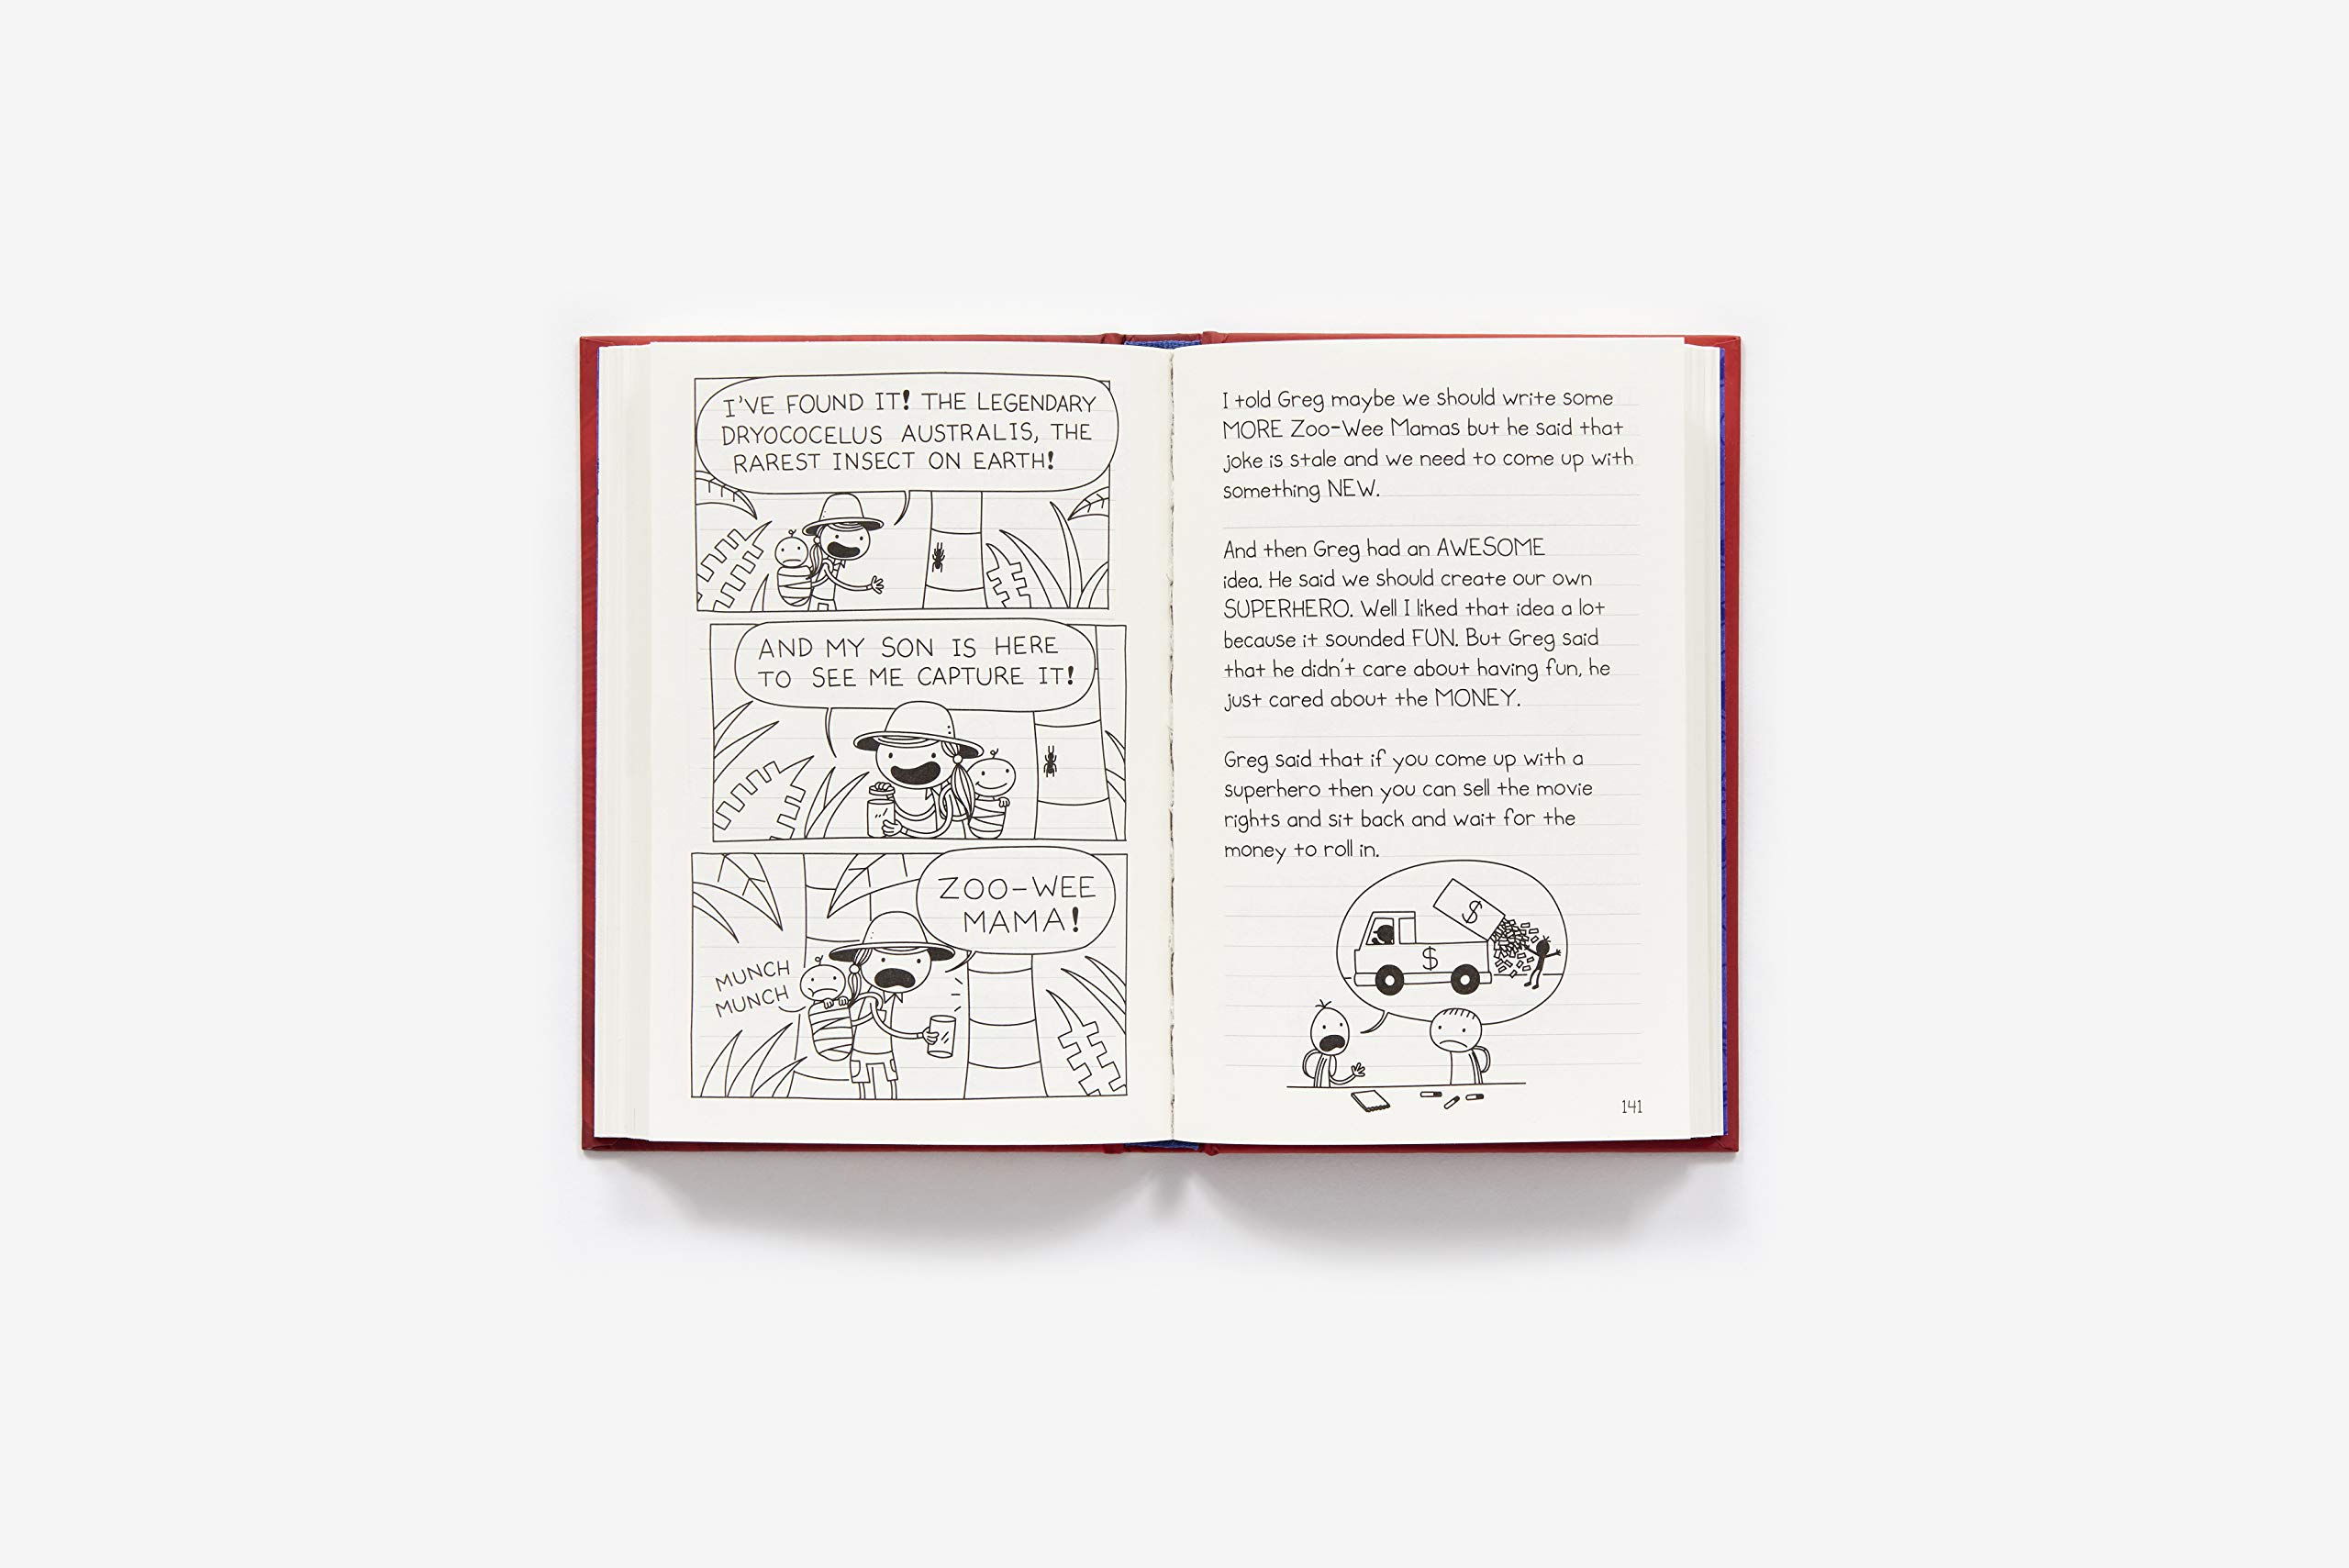 mamas on magic 107 9 at what age should kids cell how can i get a phone Diary of an Awesome Friendly Kid: Rowley Jeffersonu0027s Journal: Jeff Kinney:  9781419740275: Amazon.com: Books